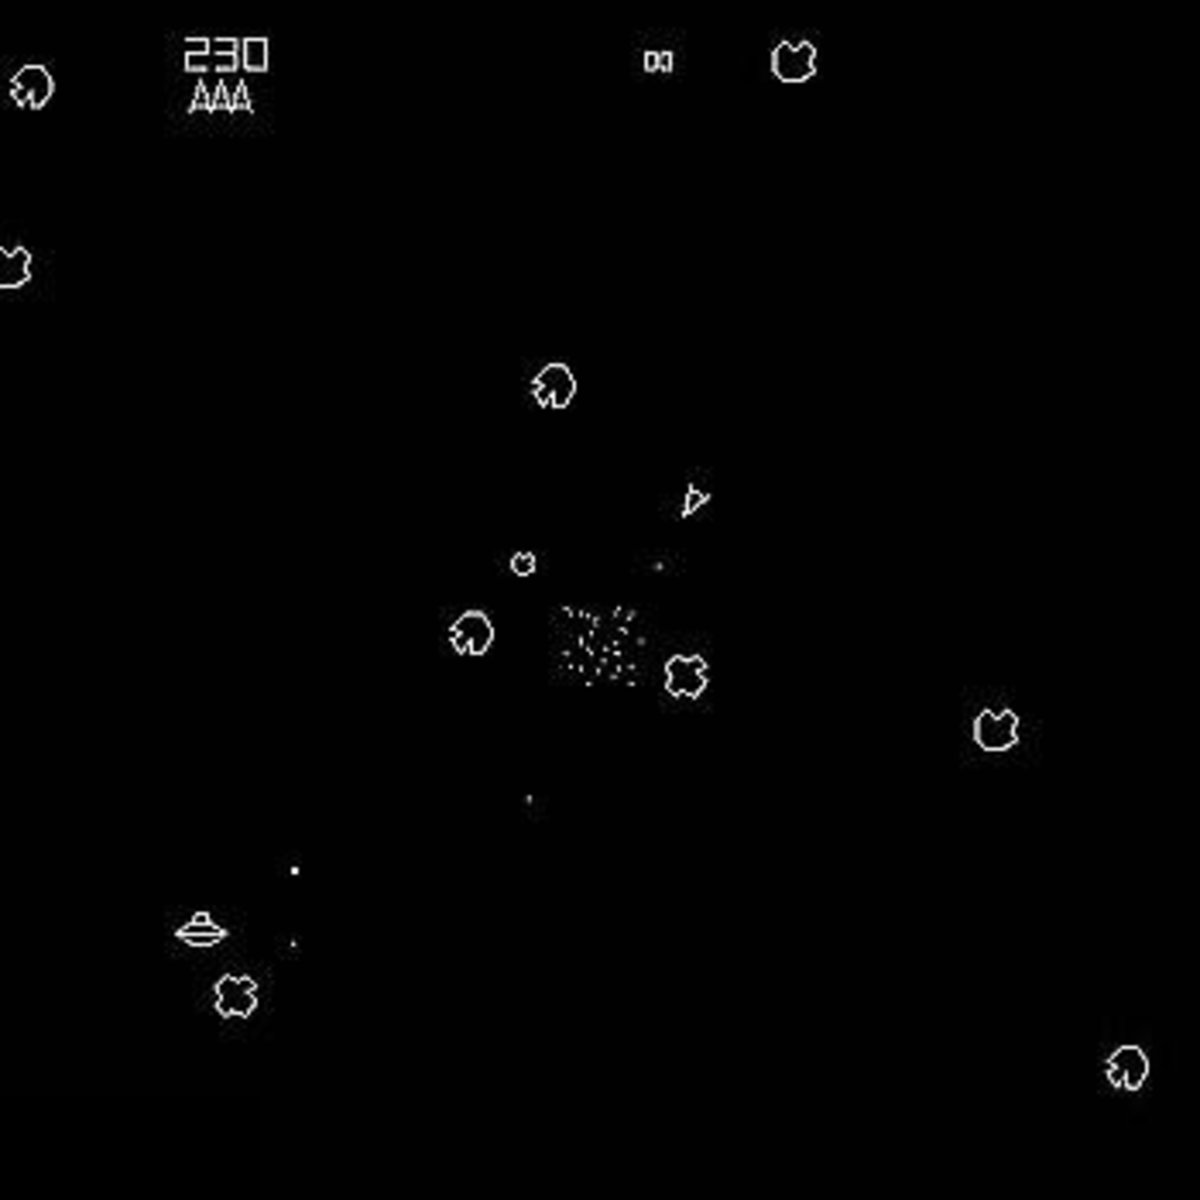 Note the vector display in the Asteroids arcade game